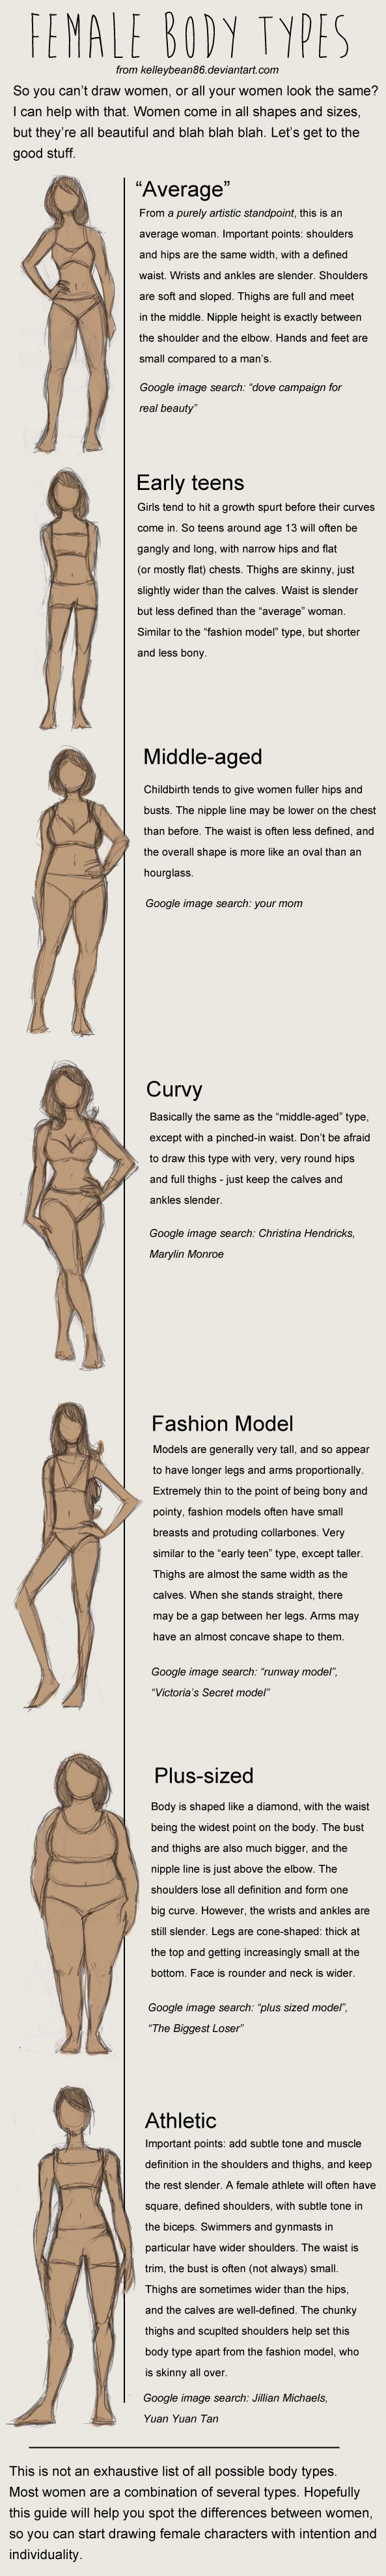 Draw Female Body Types by ~kelleybean86 on deviantART